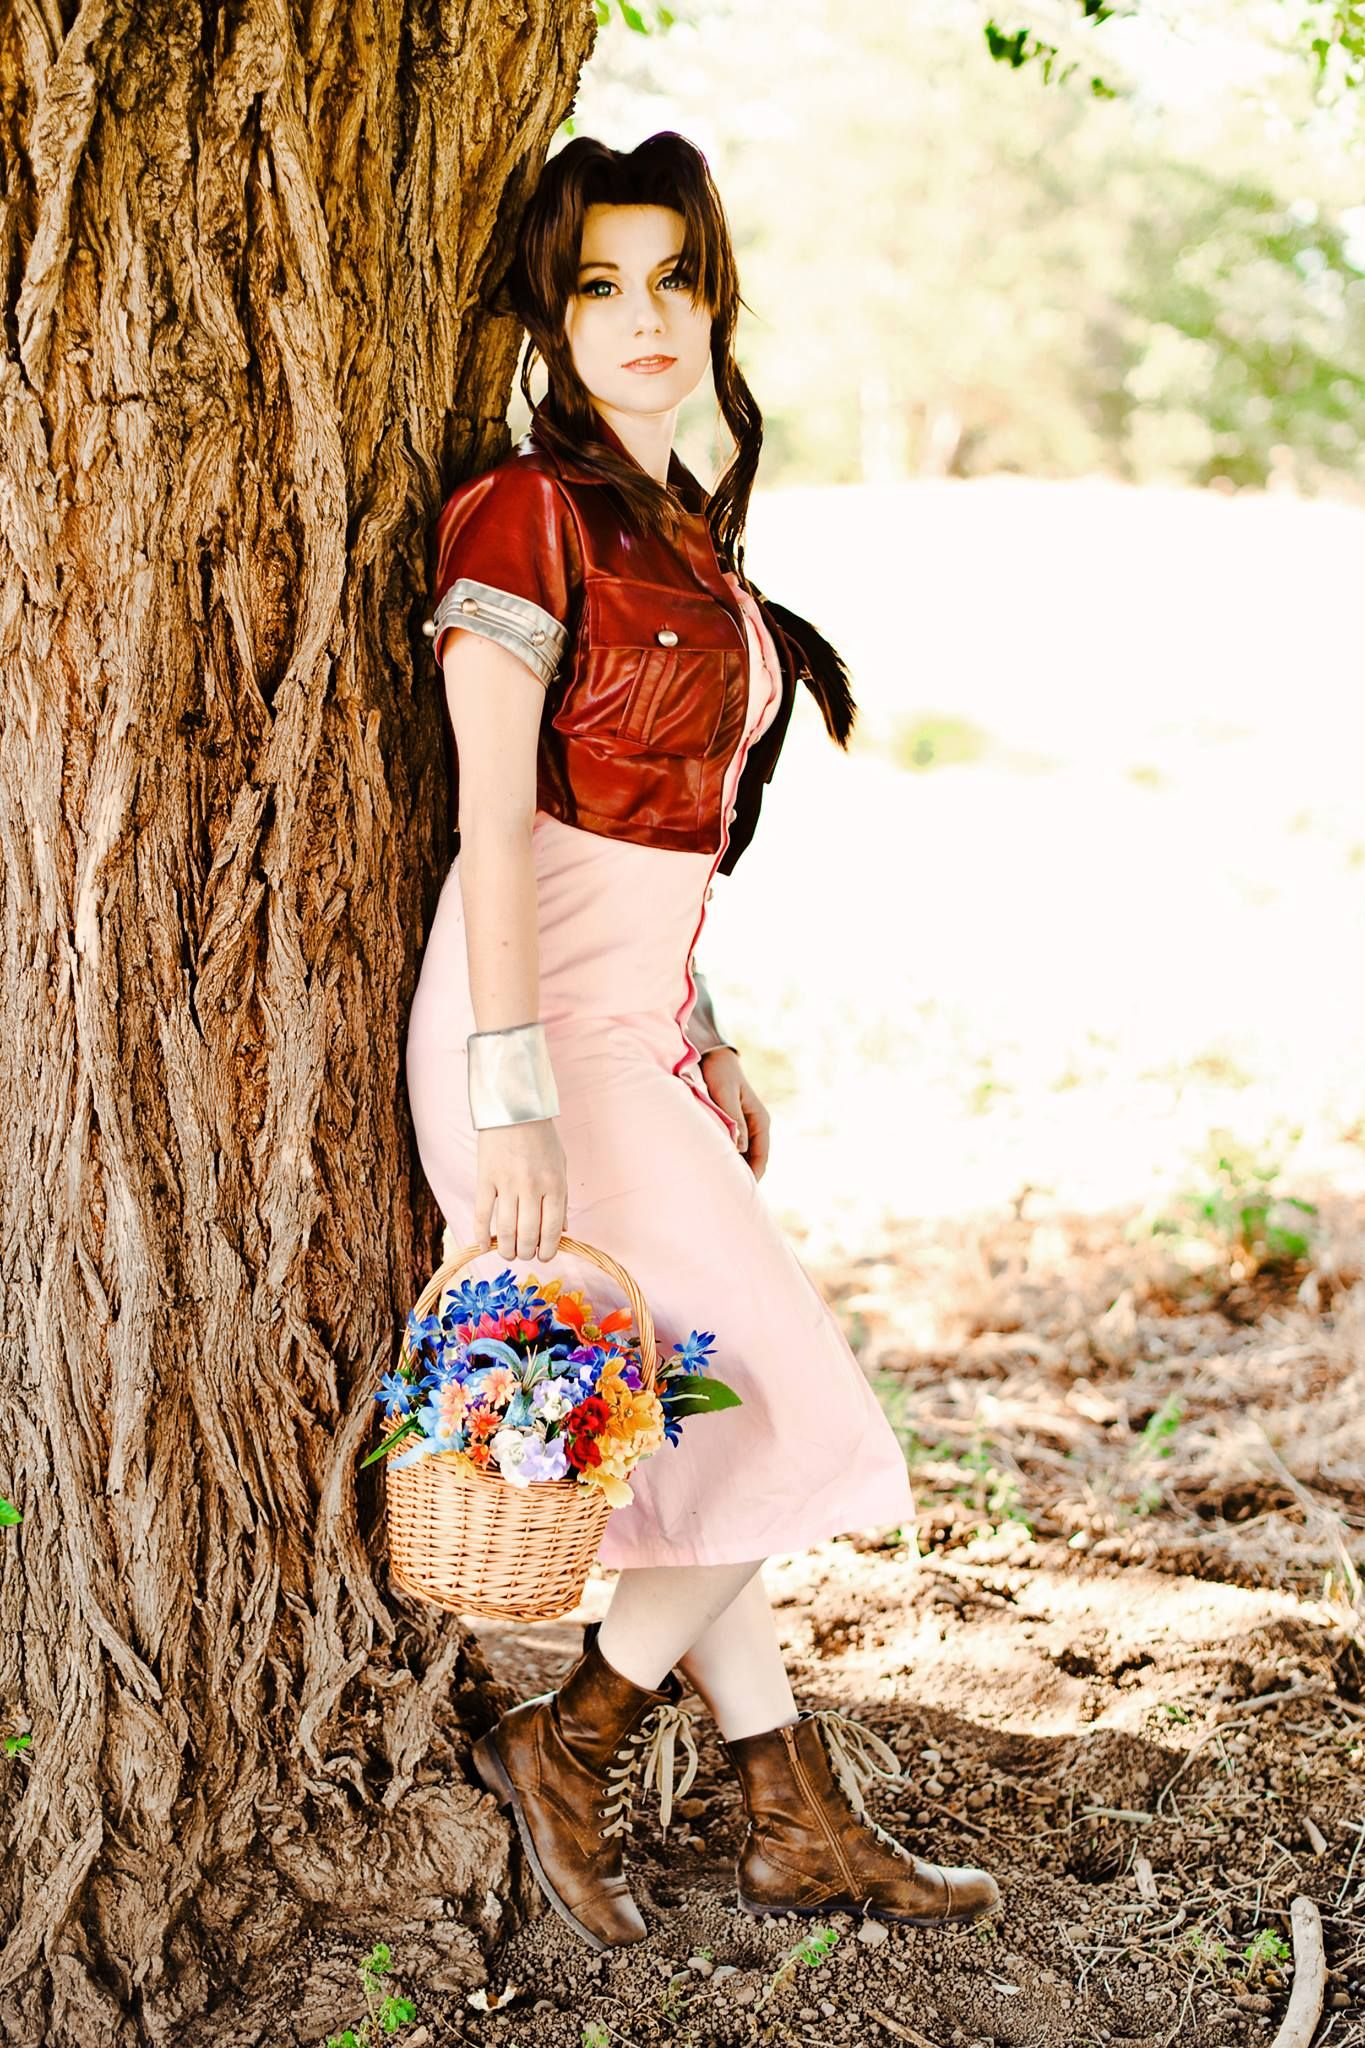 Character Aerith Gainsborough From Square Enixs Final Fantasy